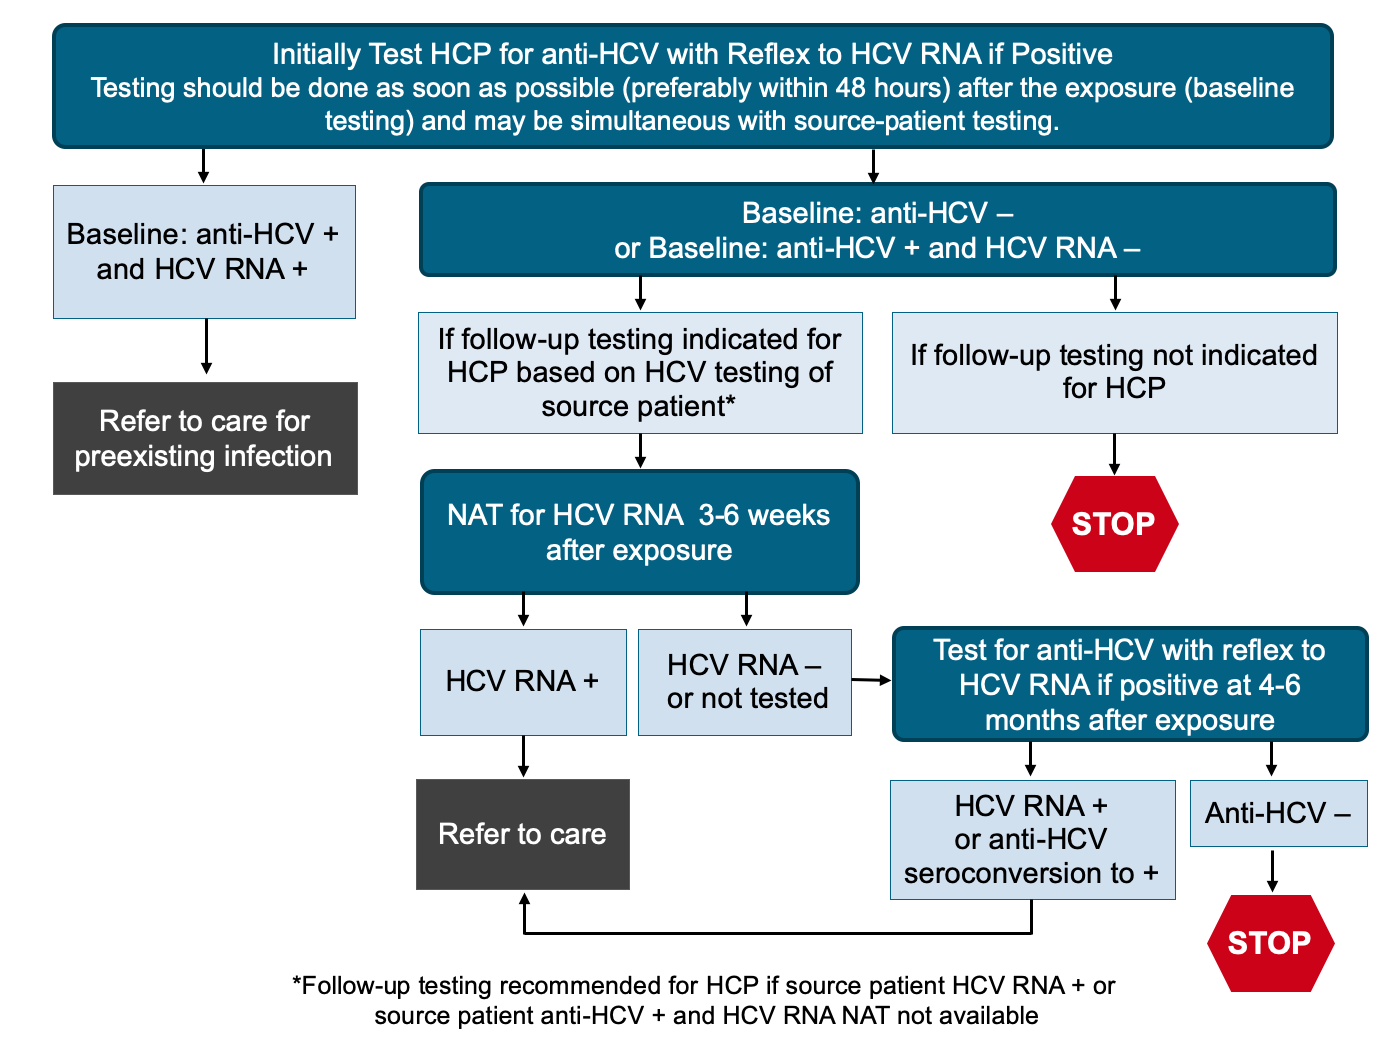 *Baseline testing of HCP for anti-HCV with reflex to a NAT for HCV RNA if positive should be done as soon as possible (preferably within 48 hours) after the exposure and may be simultaneous with source-patient testing.<div>Source: Moorman AC, de Perio MA, Goldschmidt R, et al. Testing and Clinical Management of Health Care Personnel Potentially Exposed to Hepatitis C Virus - CDC Guidance, United States, 2020. MMWR Recomm Rep. 2020;69:1-8.</div>